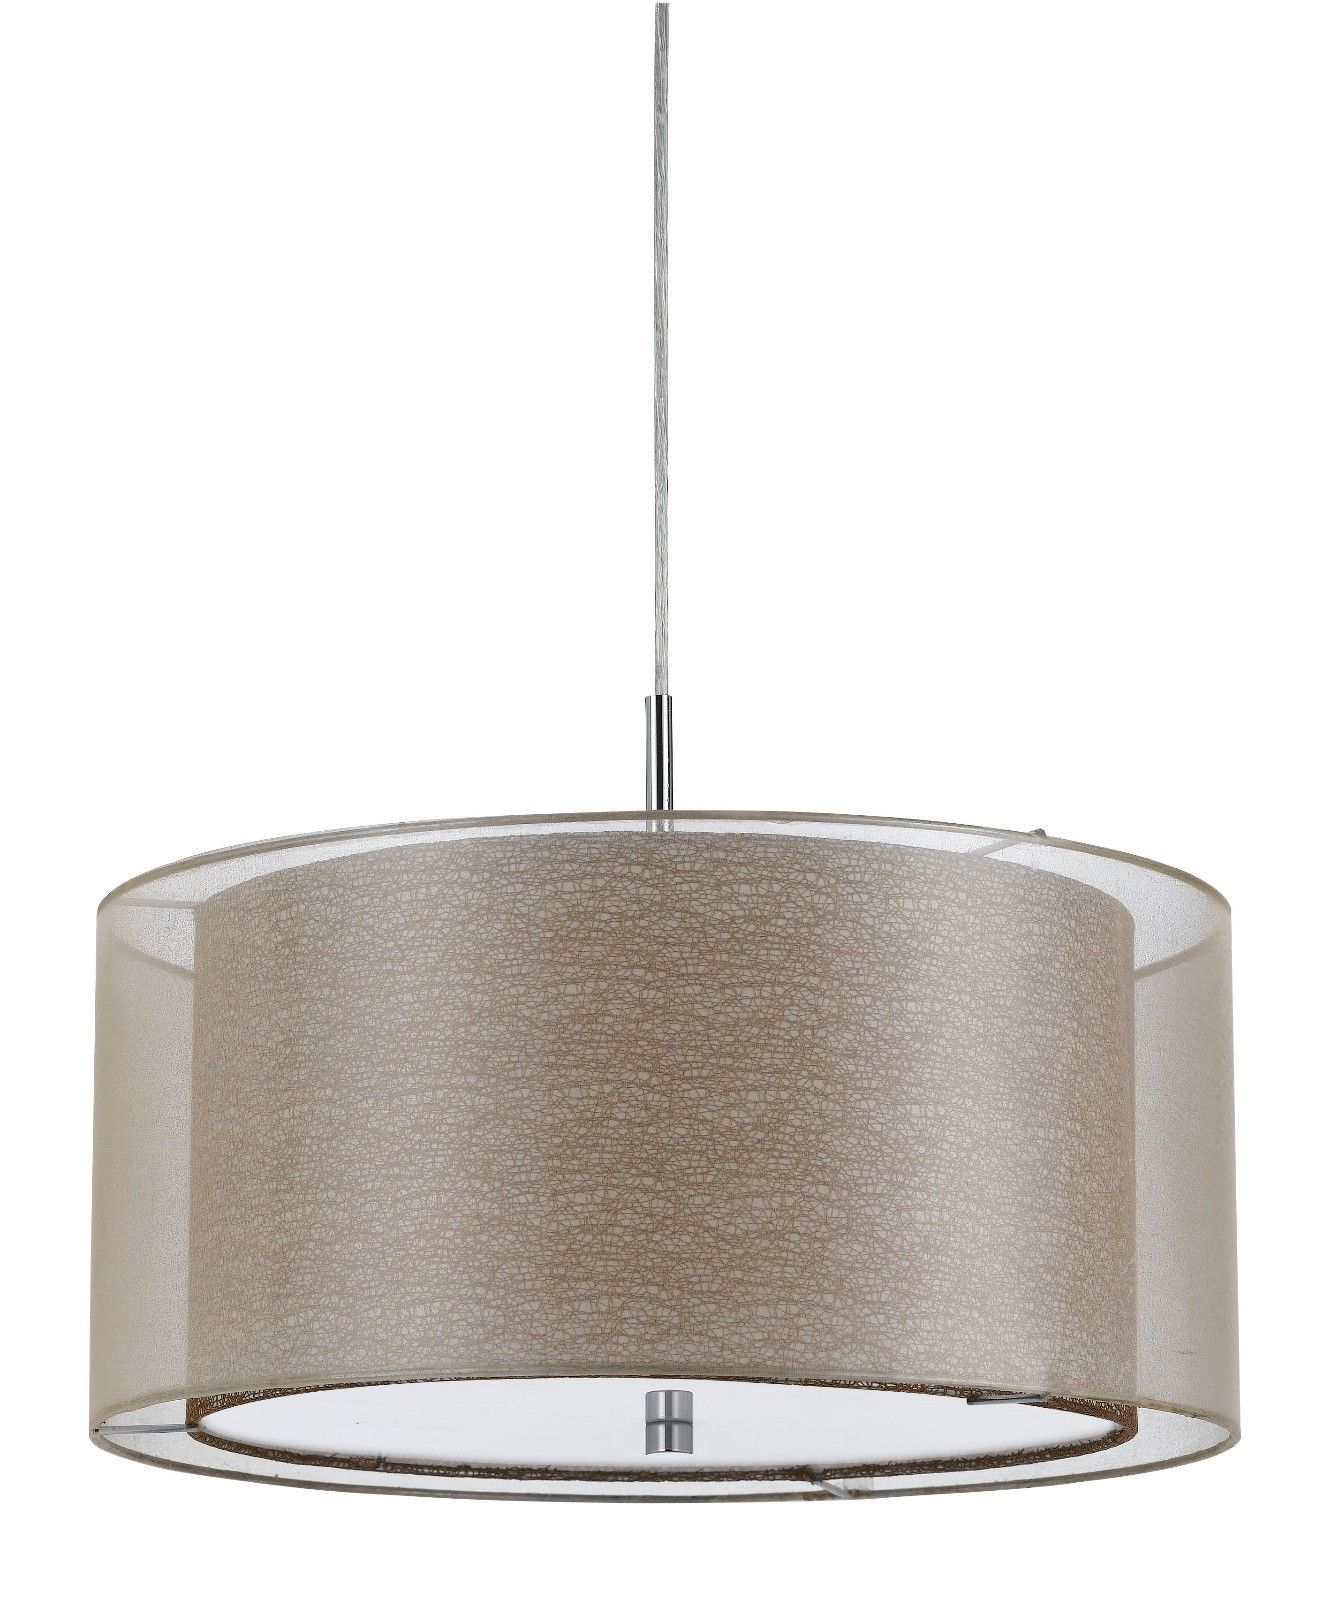 lighting pendant light hr archetypal walnut ceiling product off cylinder